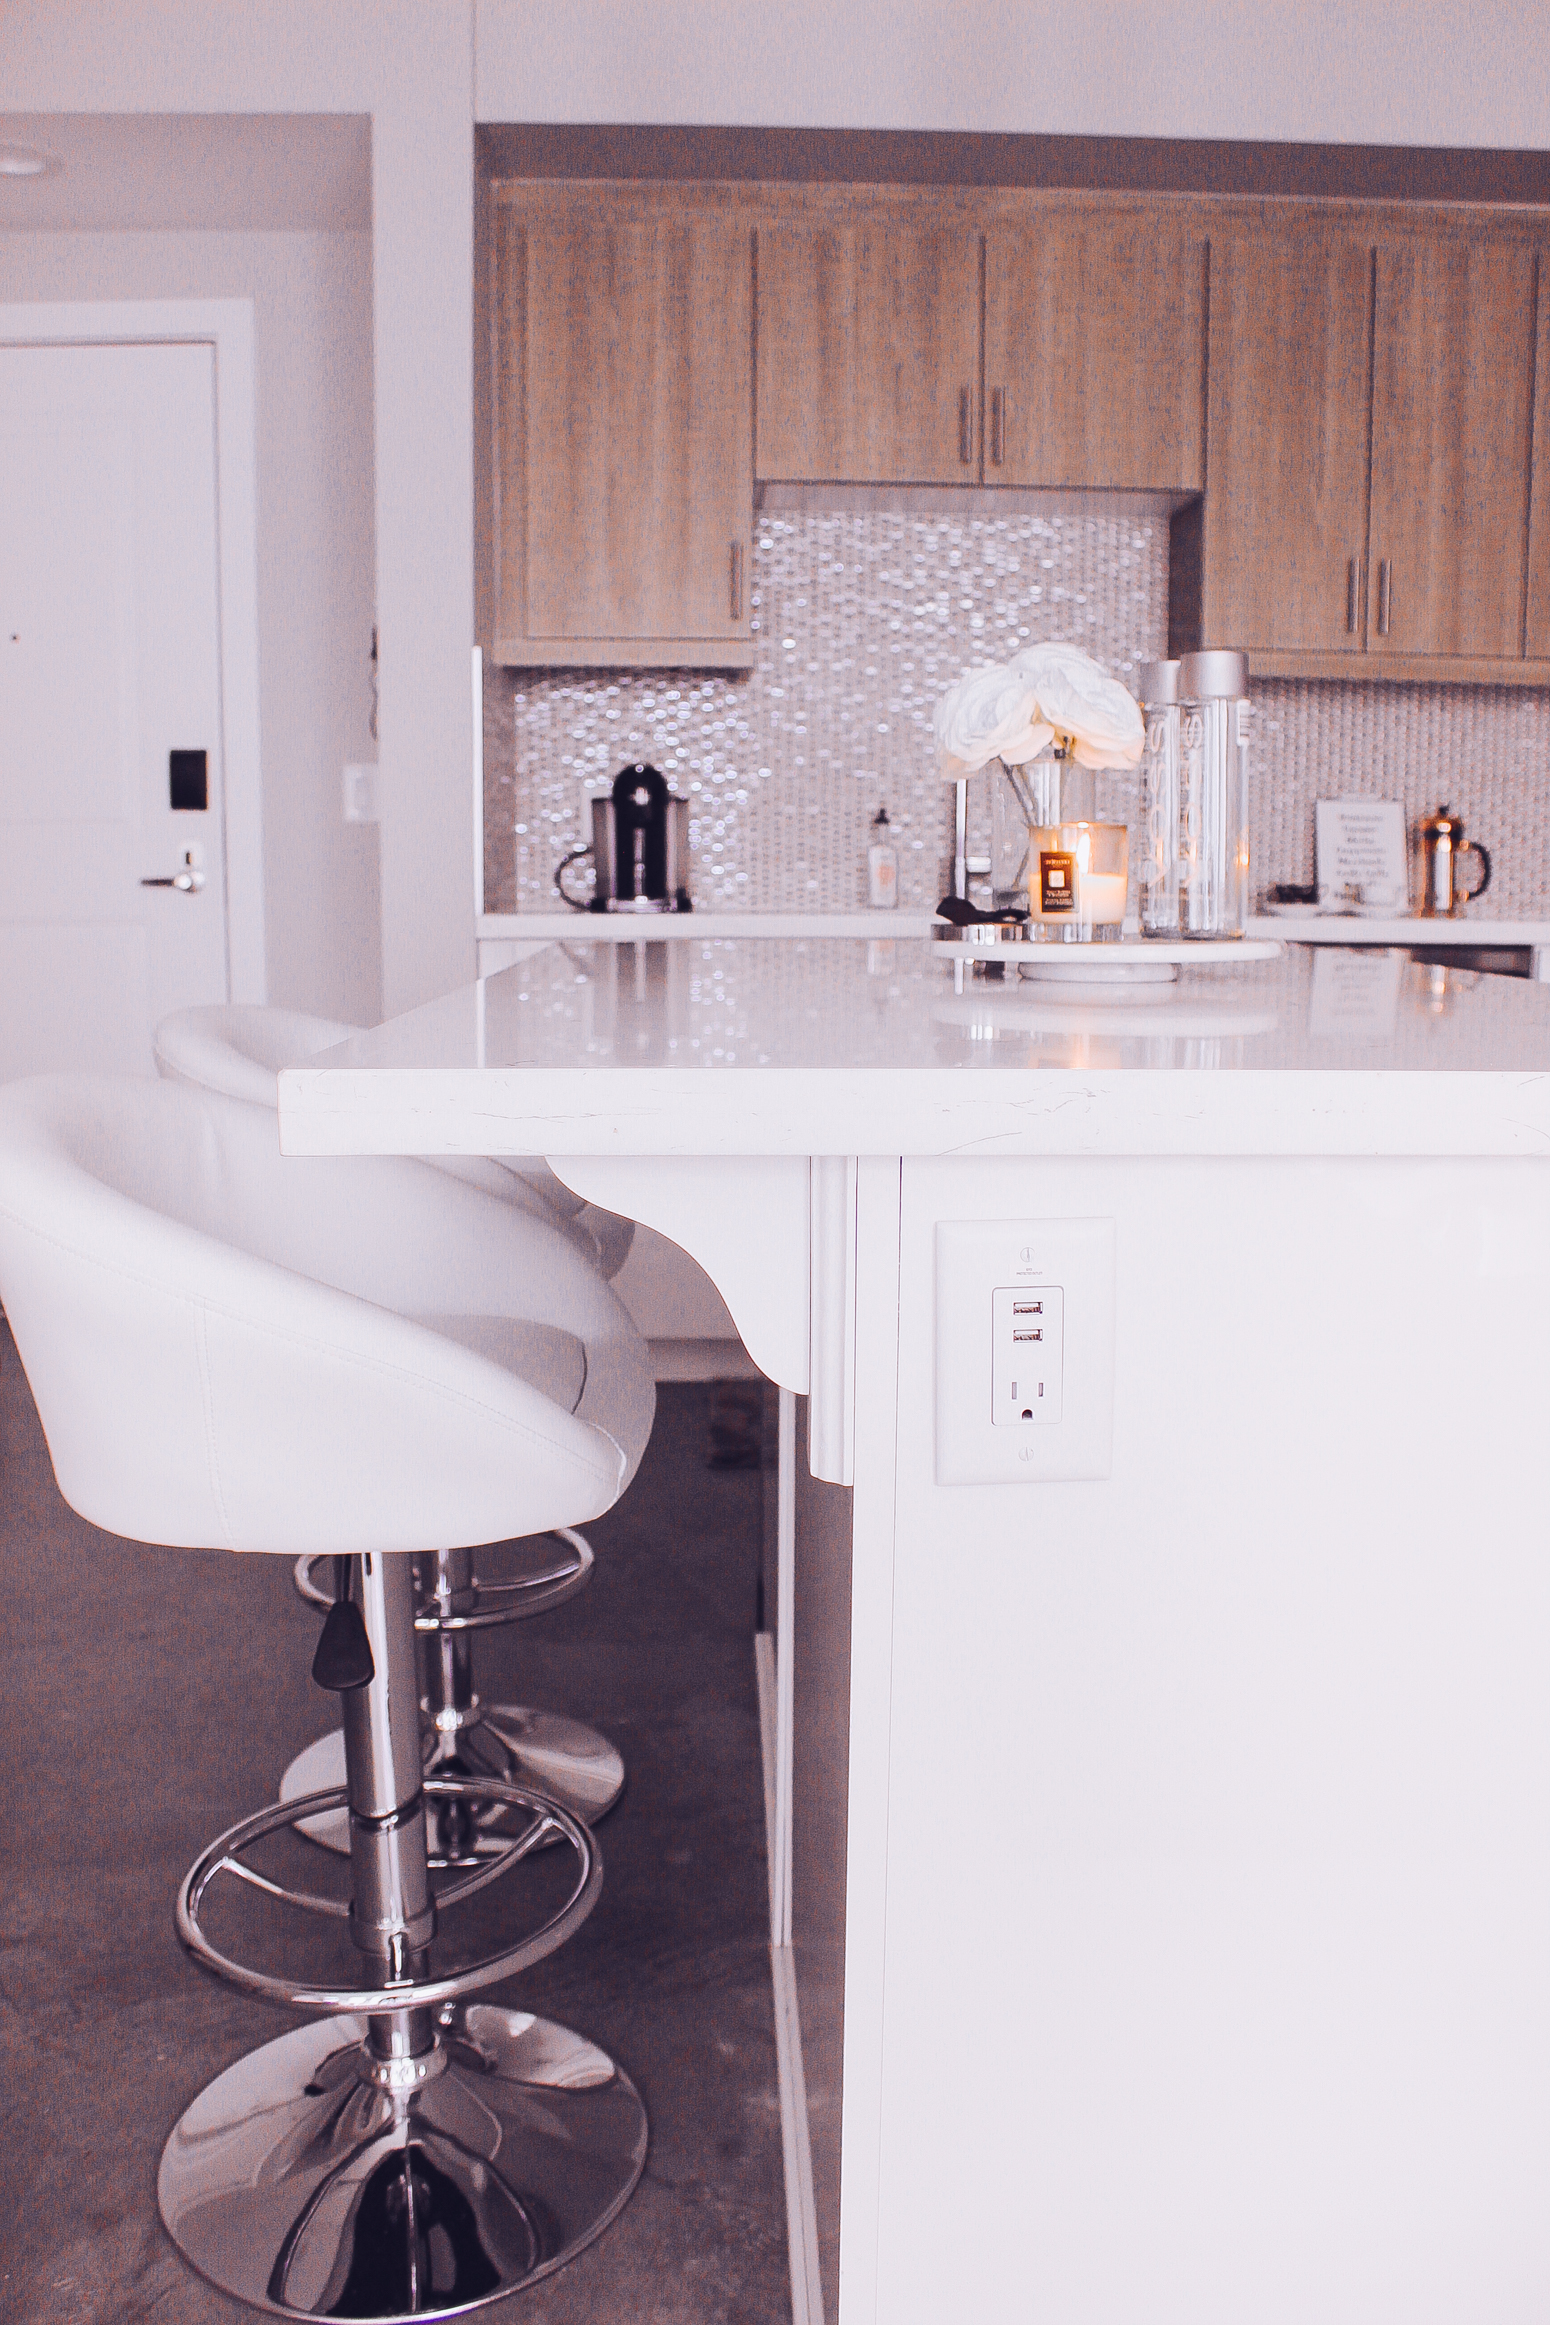 Blondie in the City | Minimal Home Decor | Kitchen Decor | White Marble Kitchen | Neutral Kitchen Decor | #Decor #Home